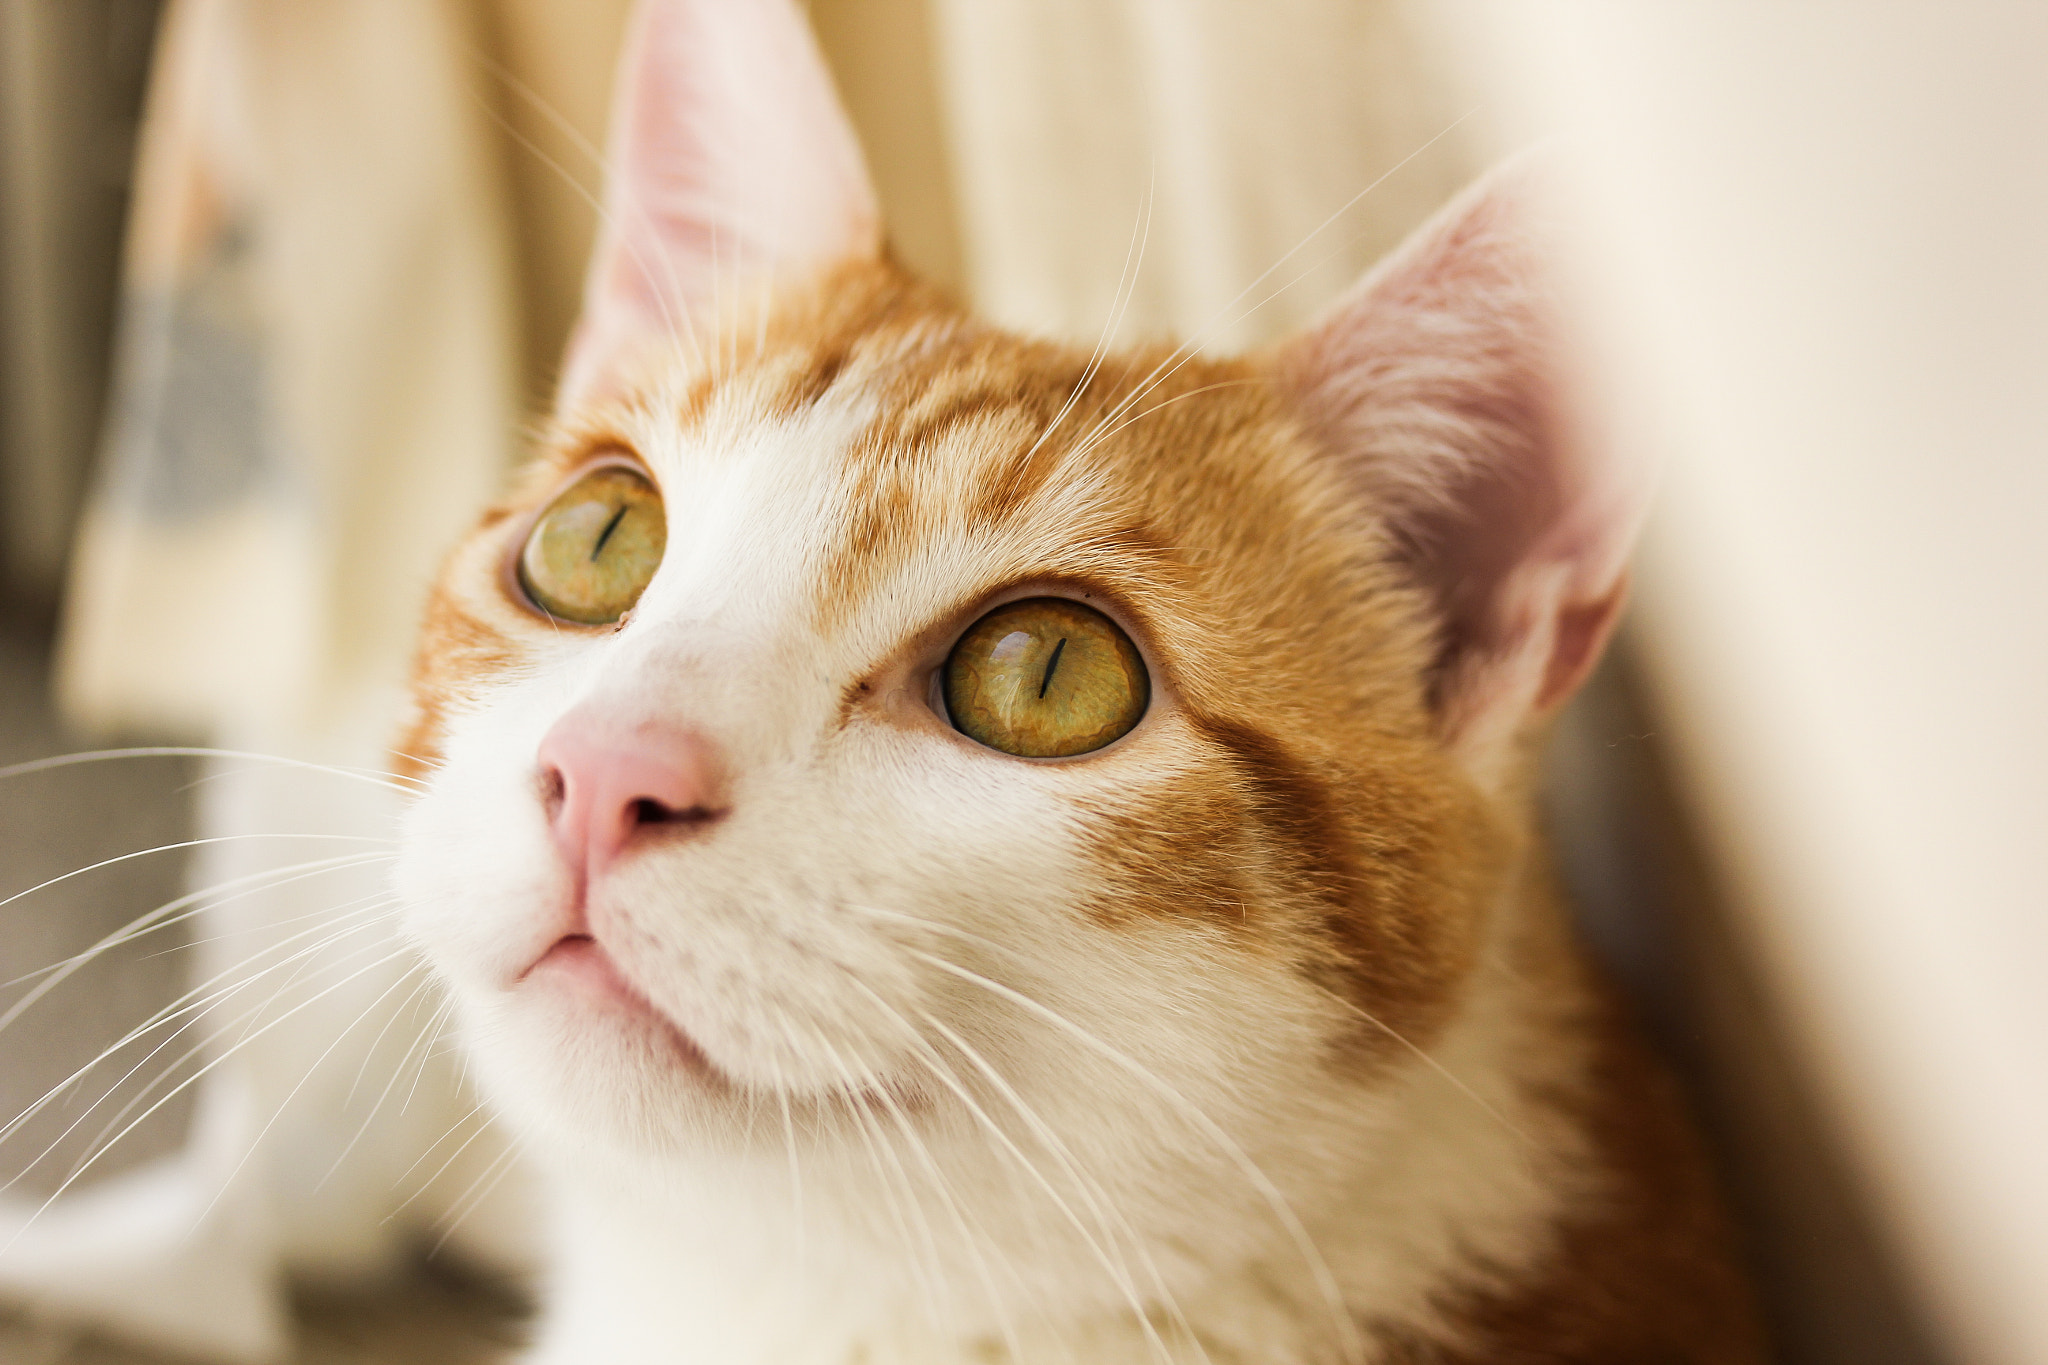 Photograph The Cat Gazes by Stephen Moehle on 500px